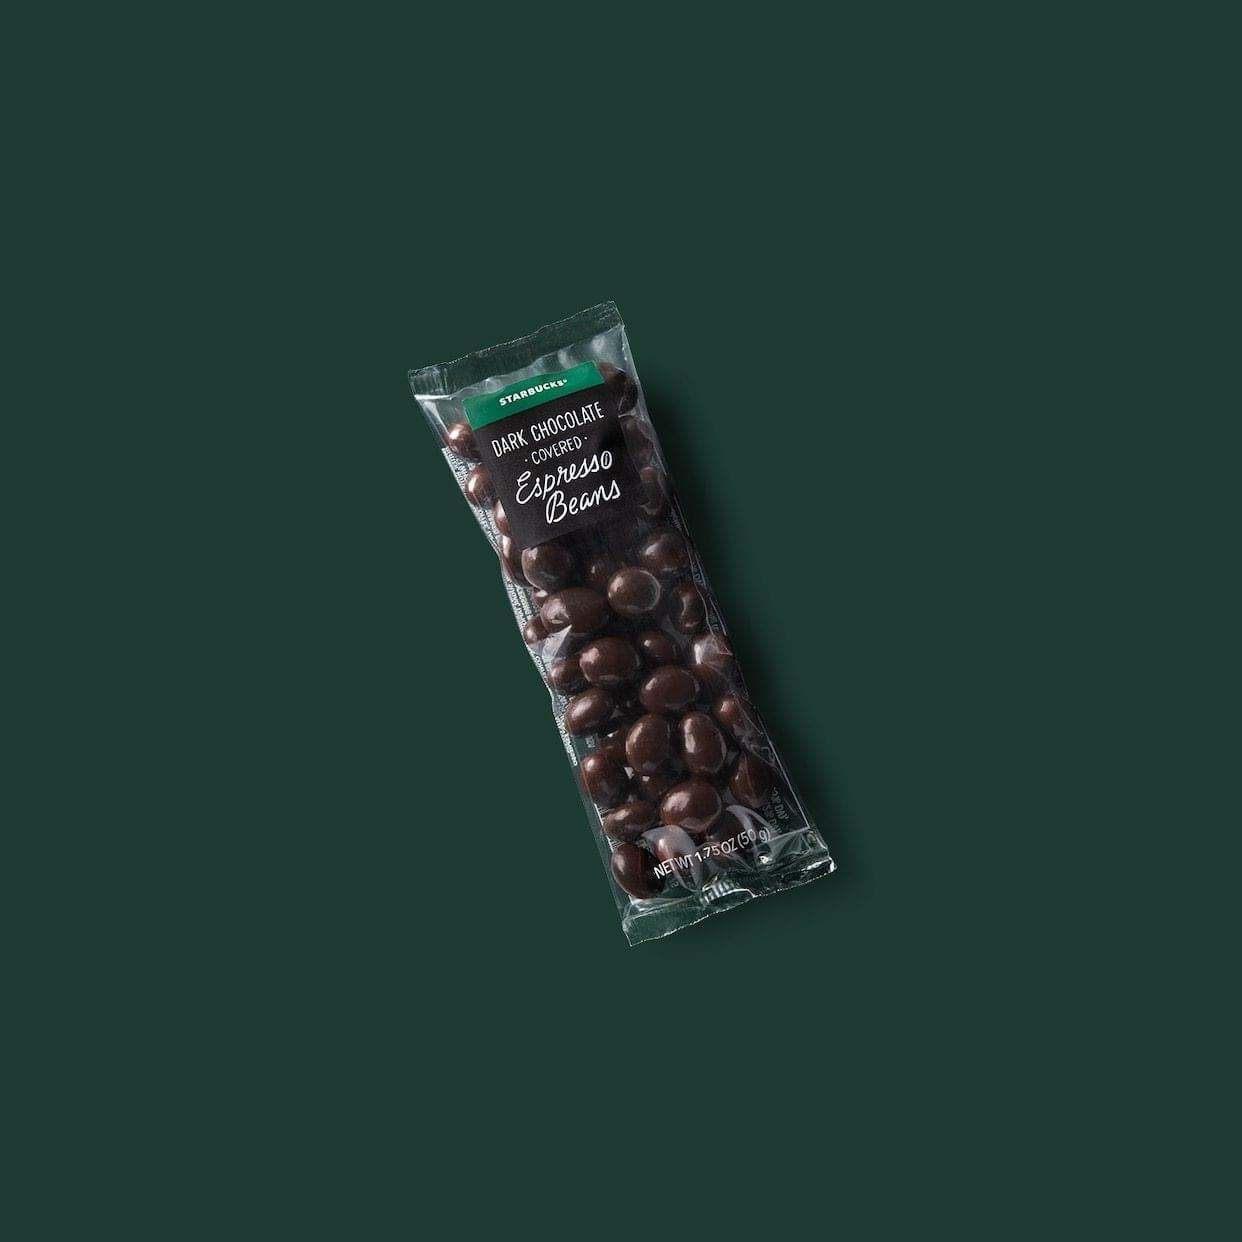 Starbucks Chocolate Covered Espresso Beans Nutrition Facts